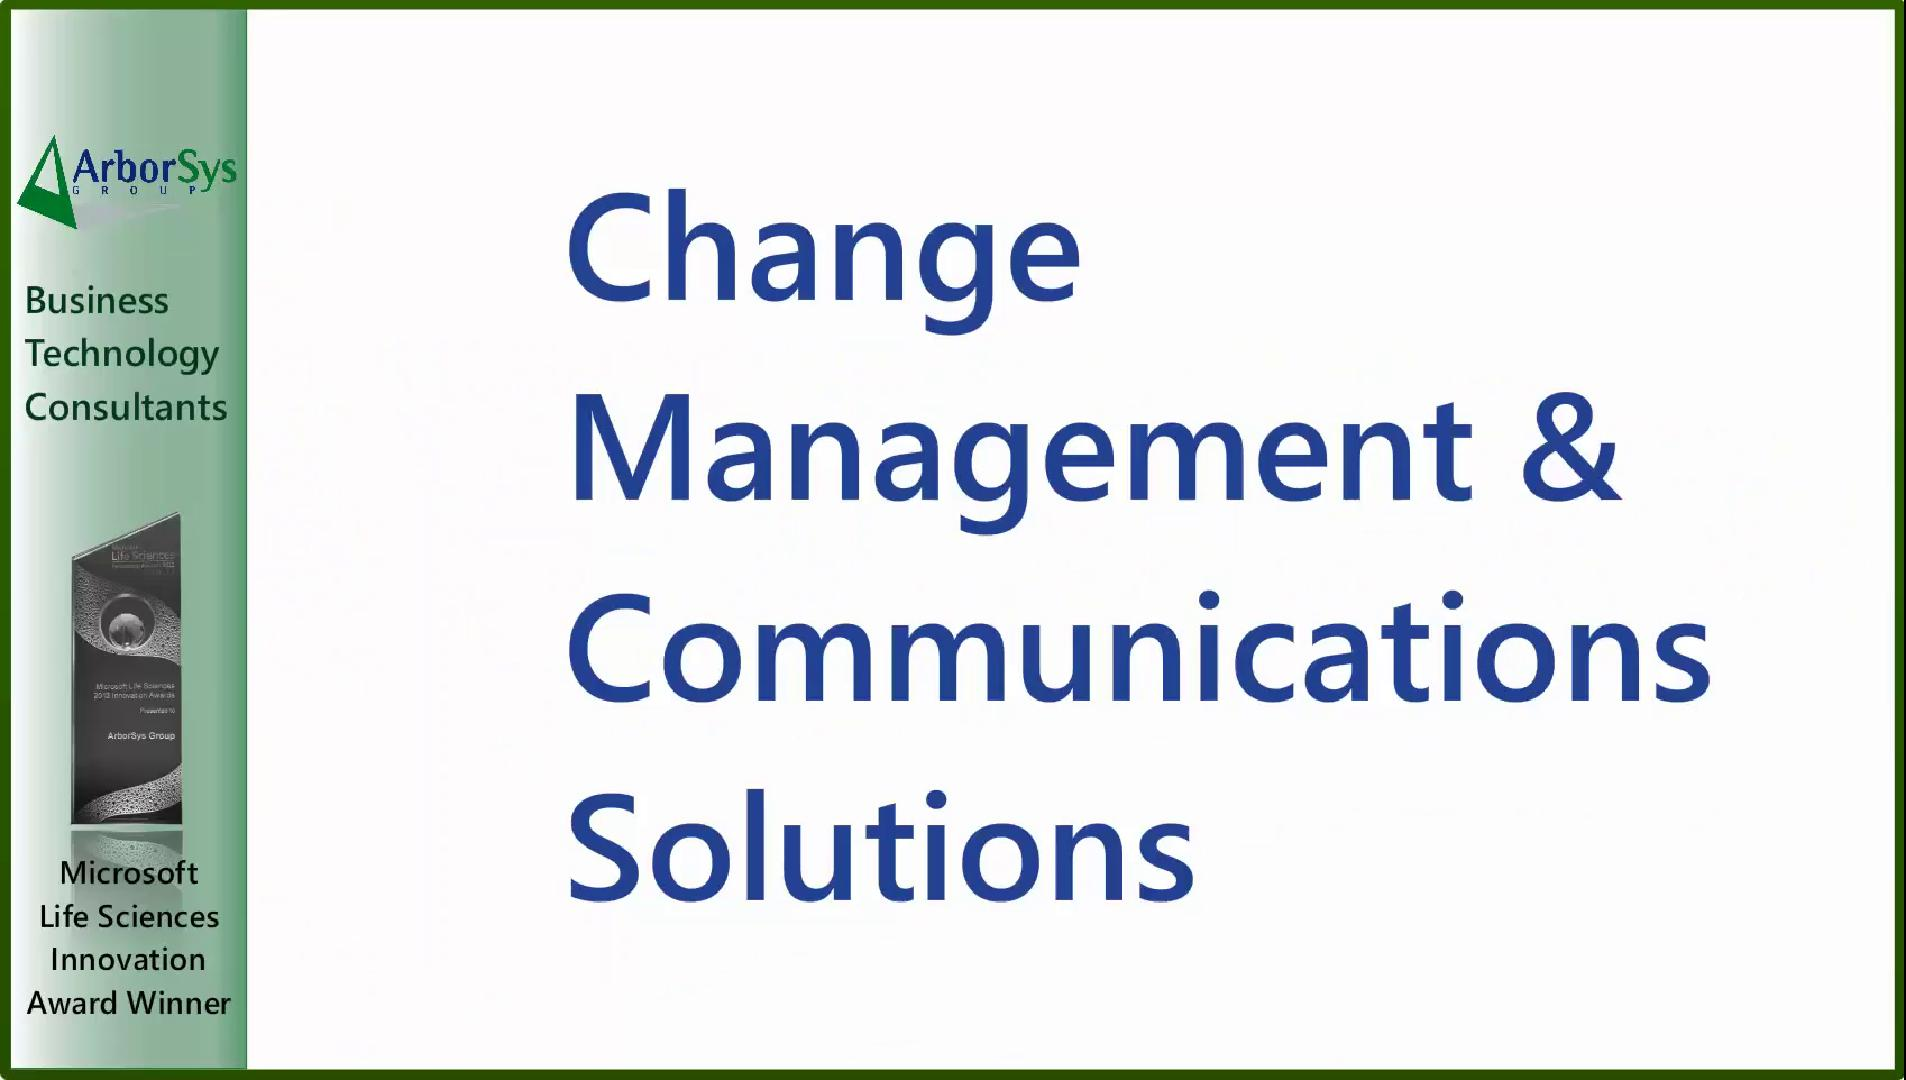 ArborSys Change Management Overview